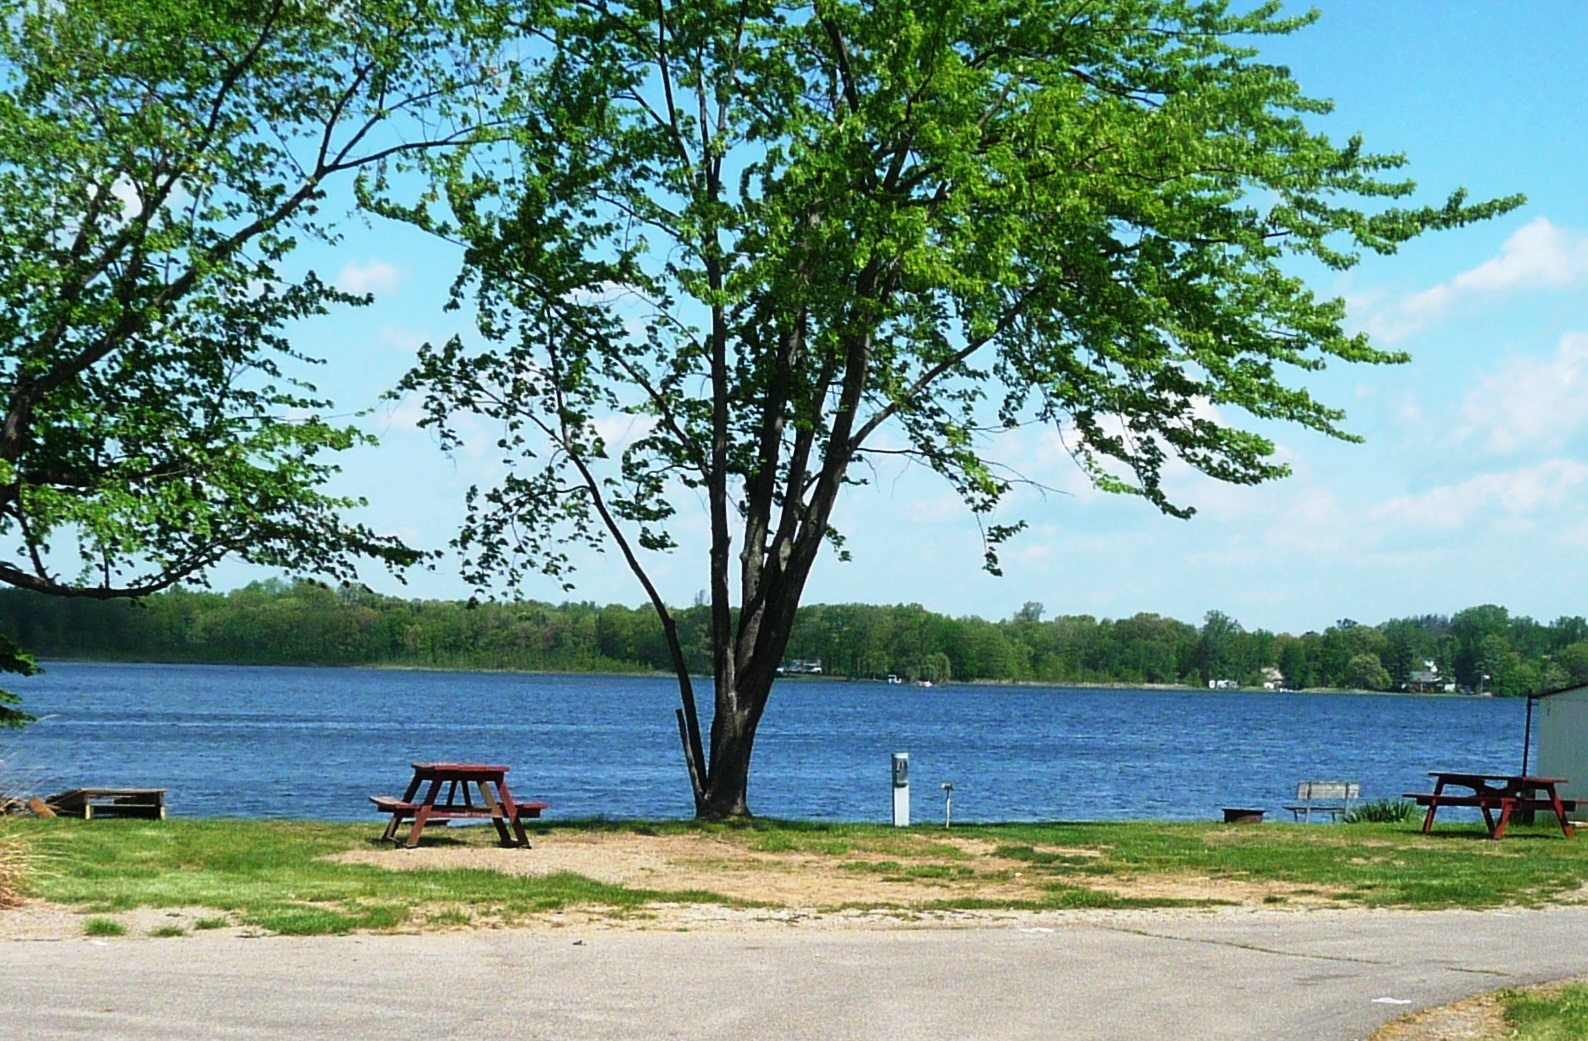 Lake frontage sites available for overnight camping.